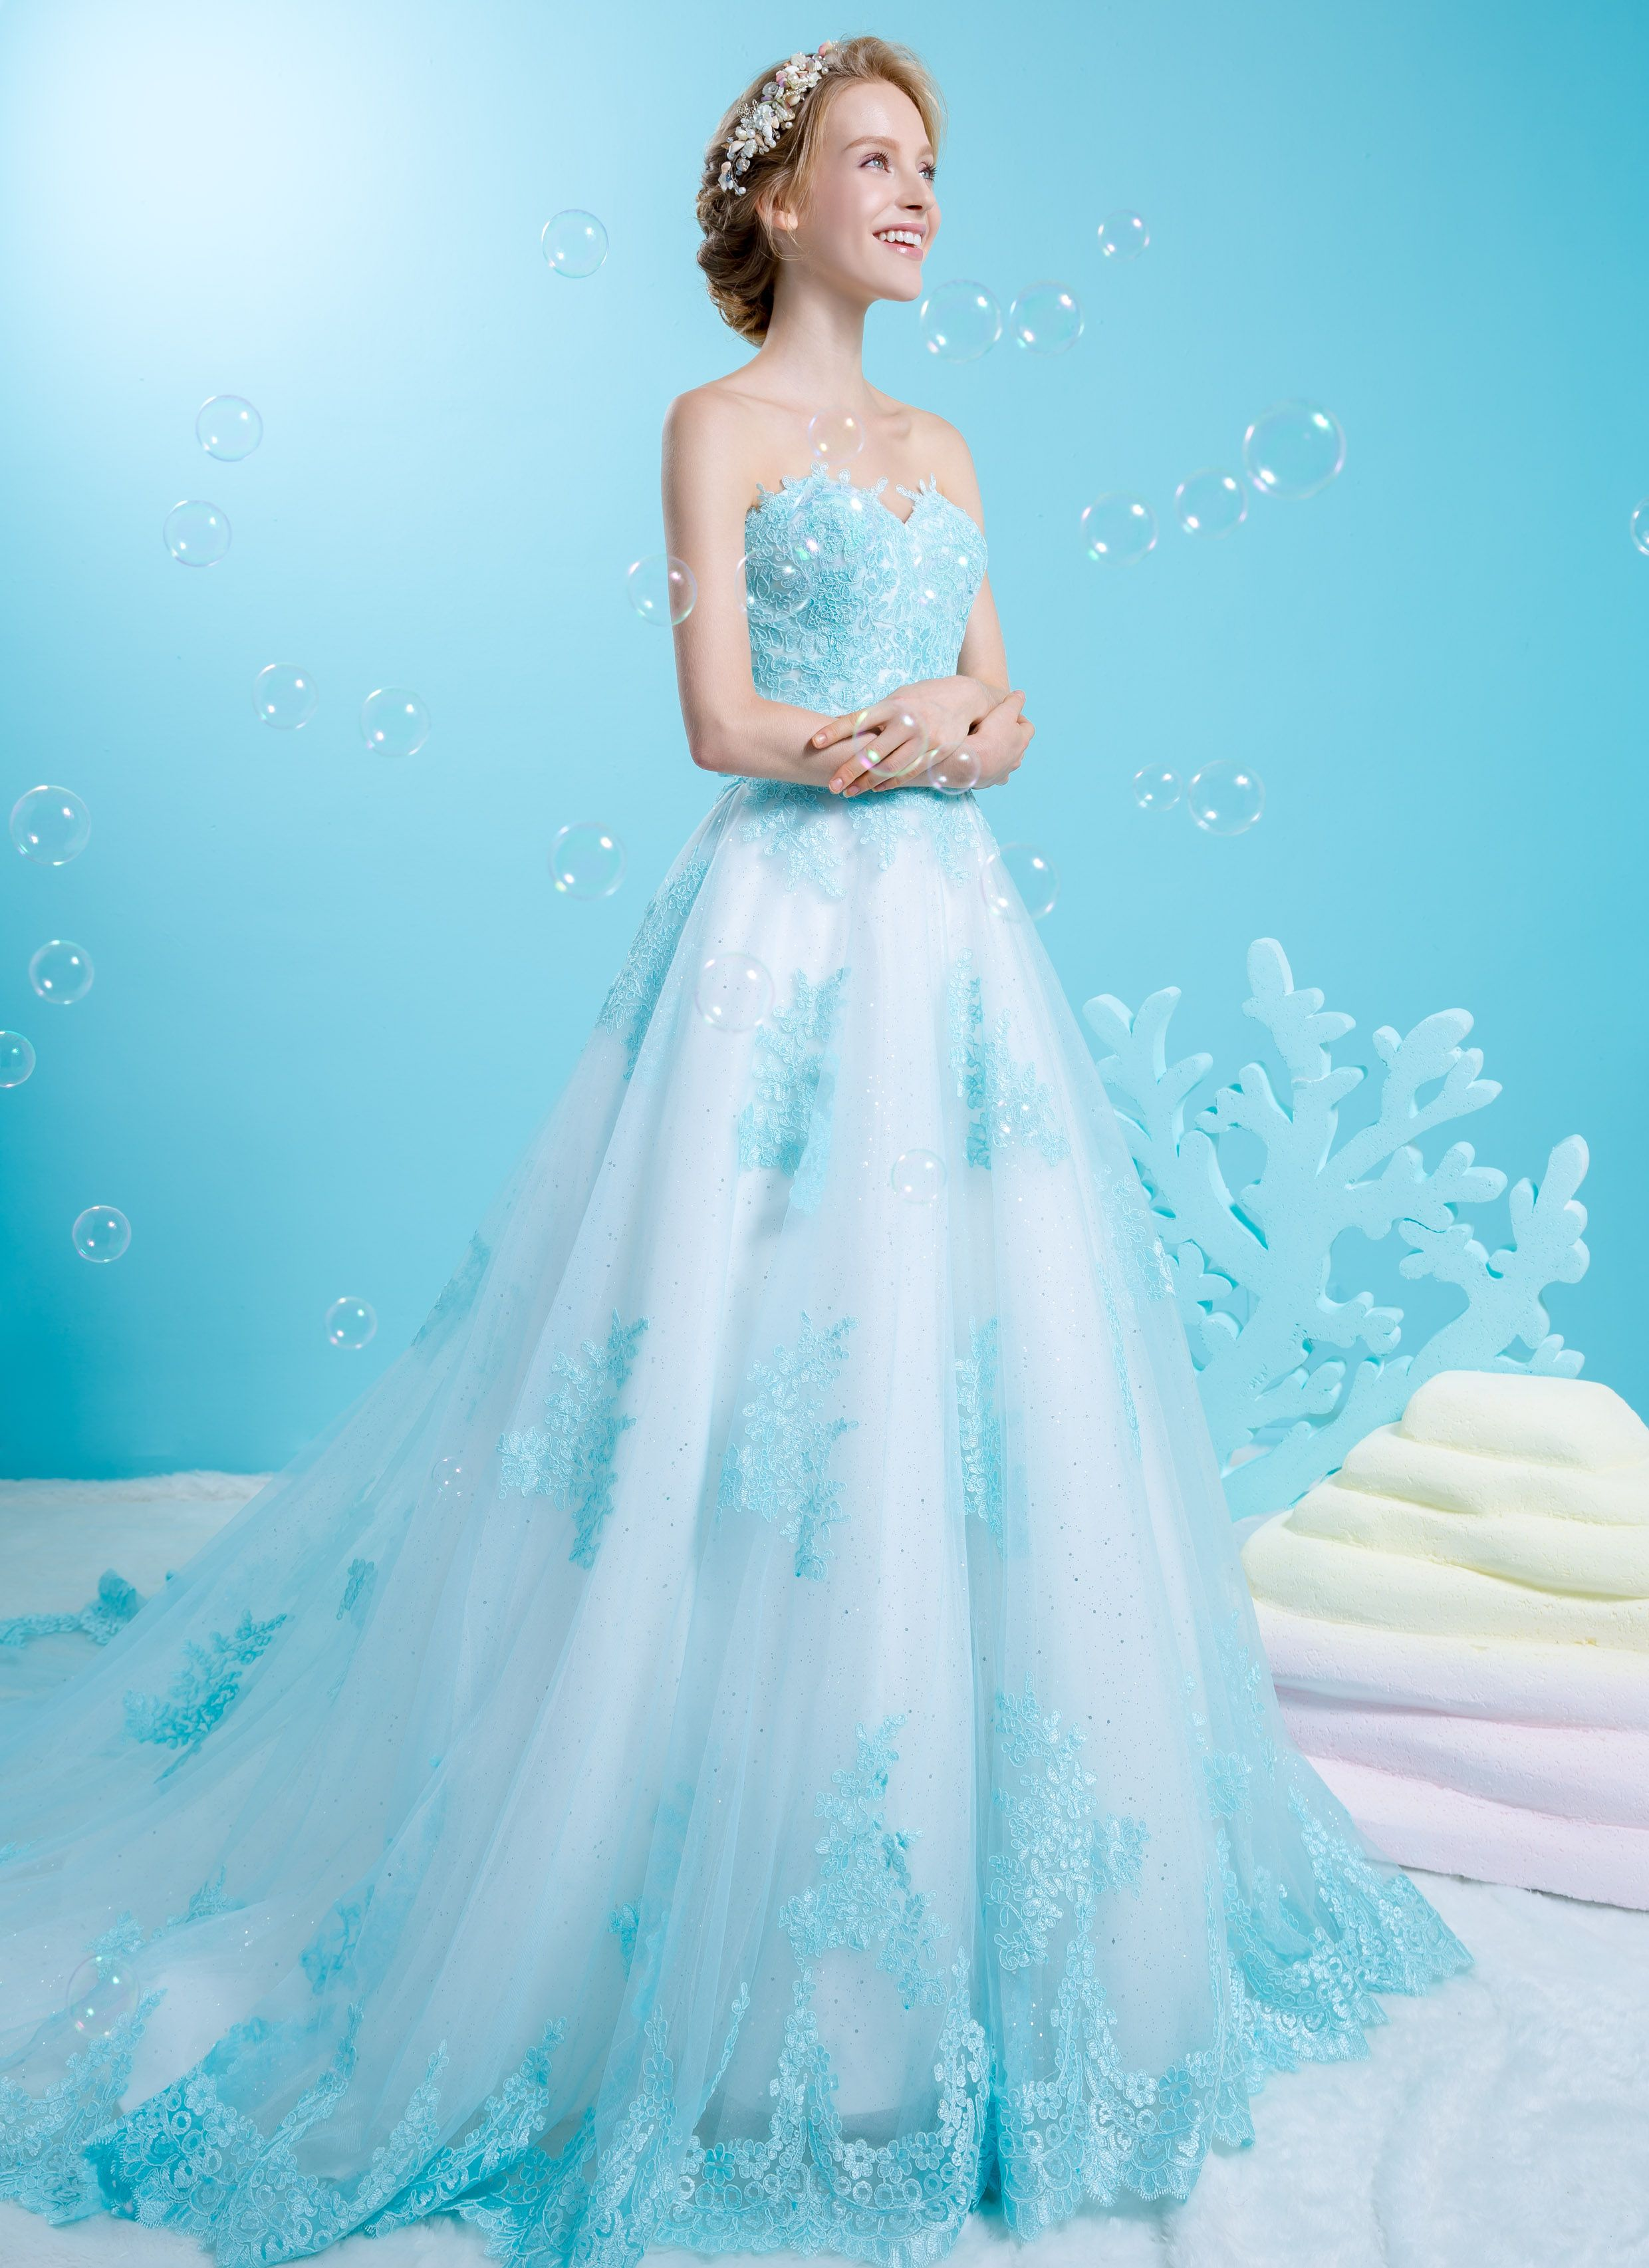 evening gown | Happily Ever After | Pinterest | Gowns, Fantasy dress ...